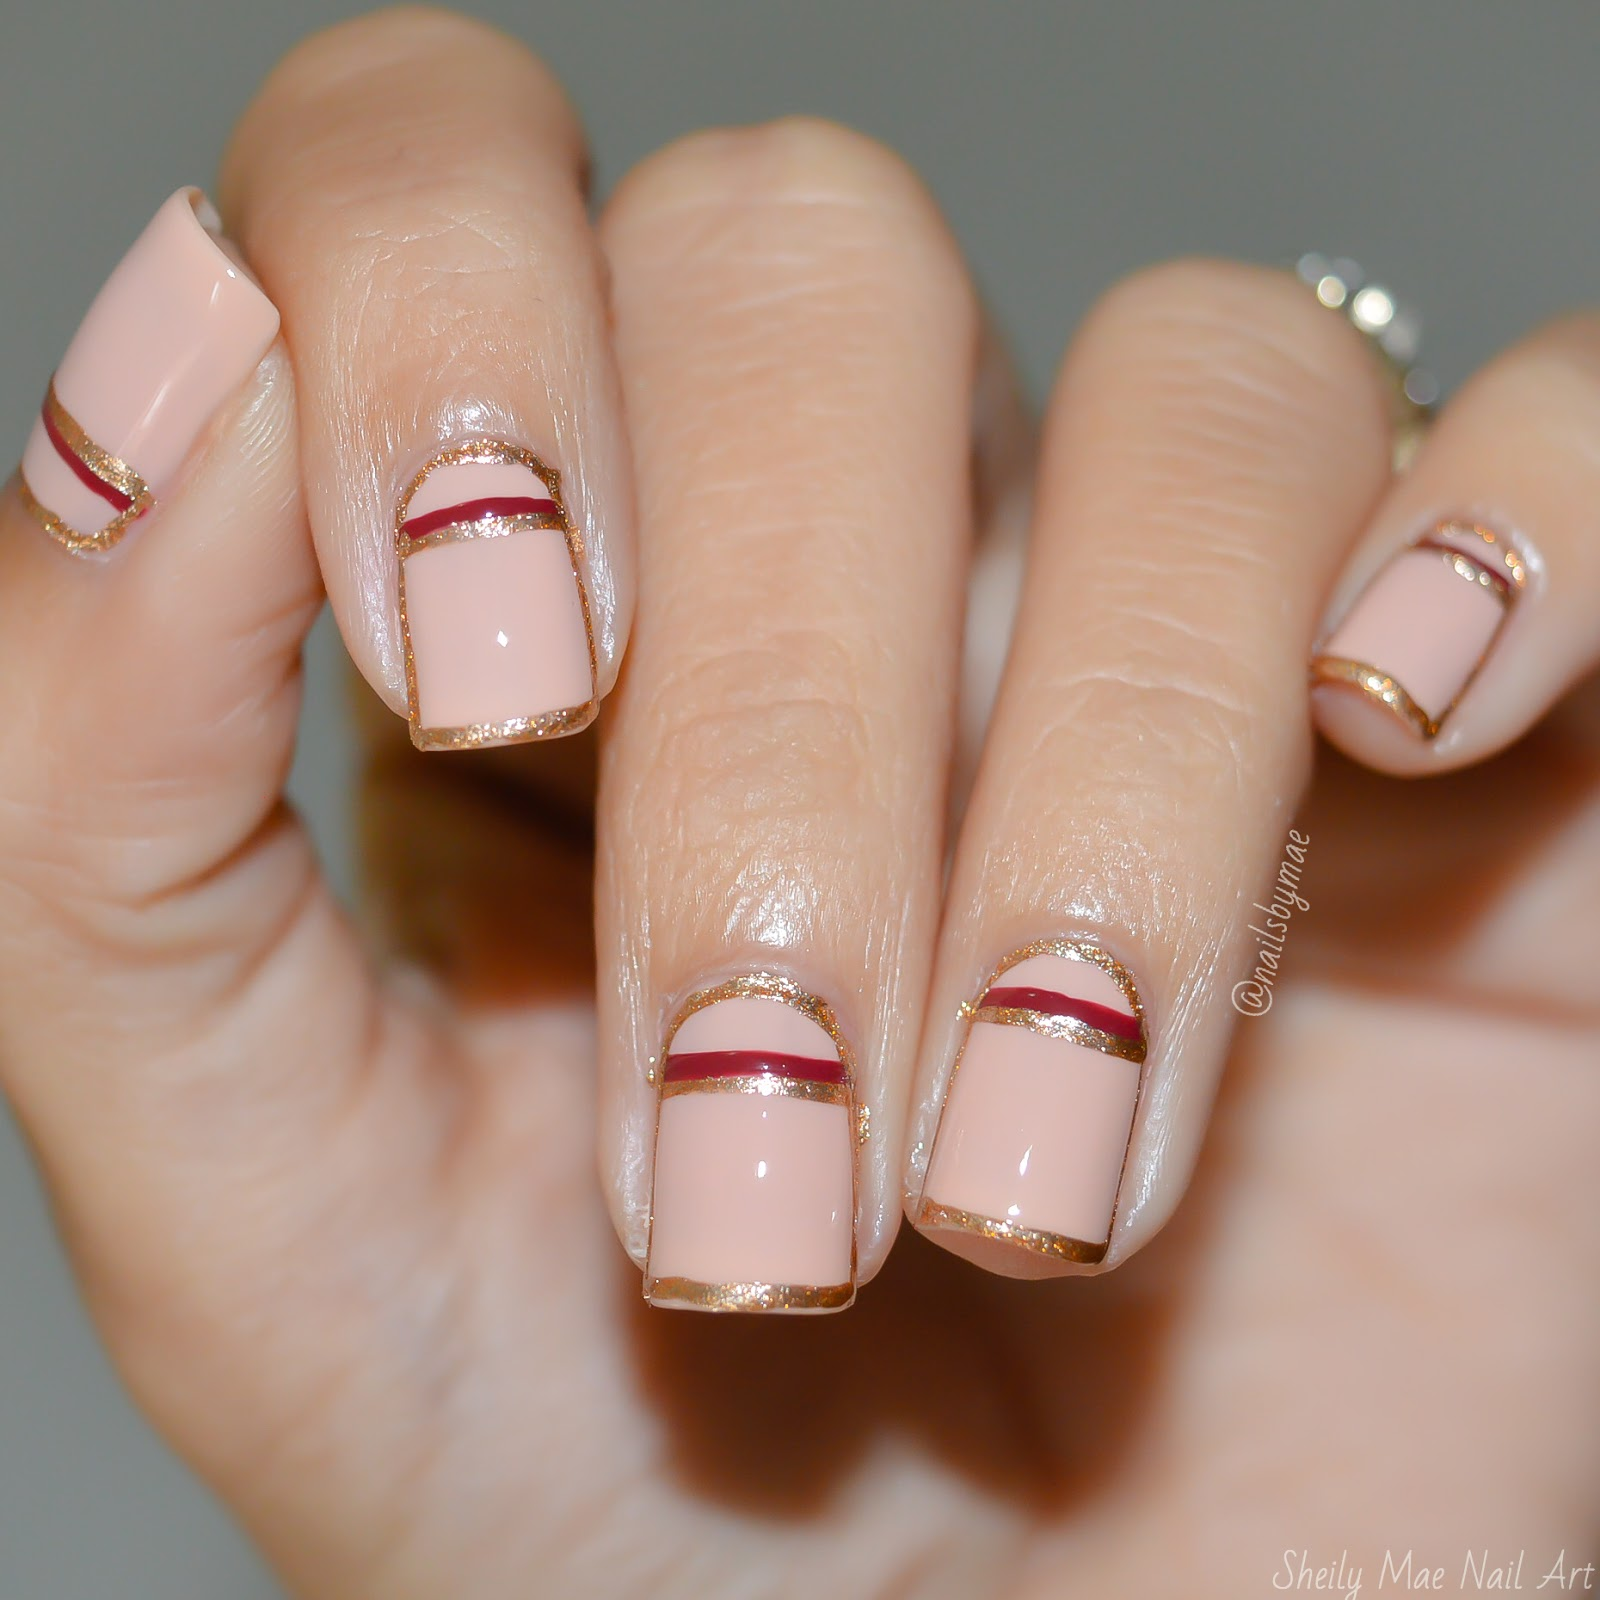 3 Easy Nail Designs You Should Try This Fall - Sheily Mae Nail Art